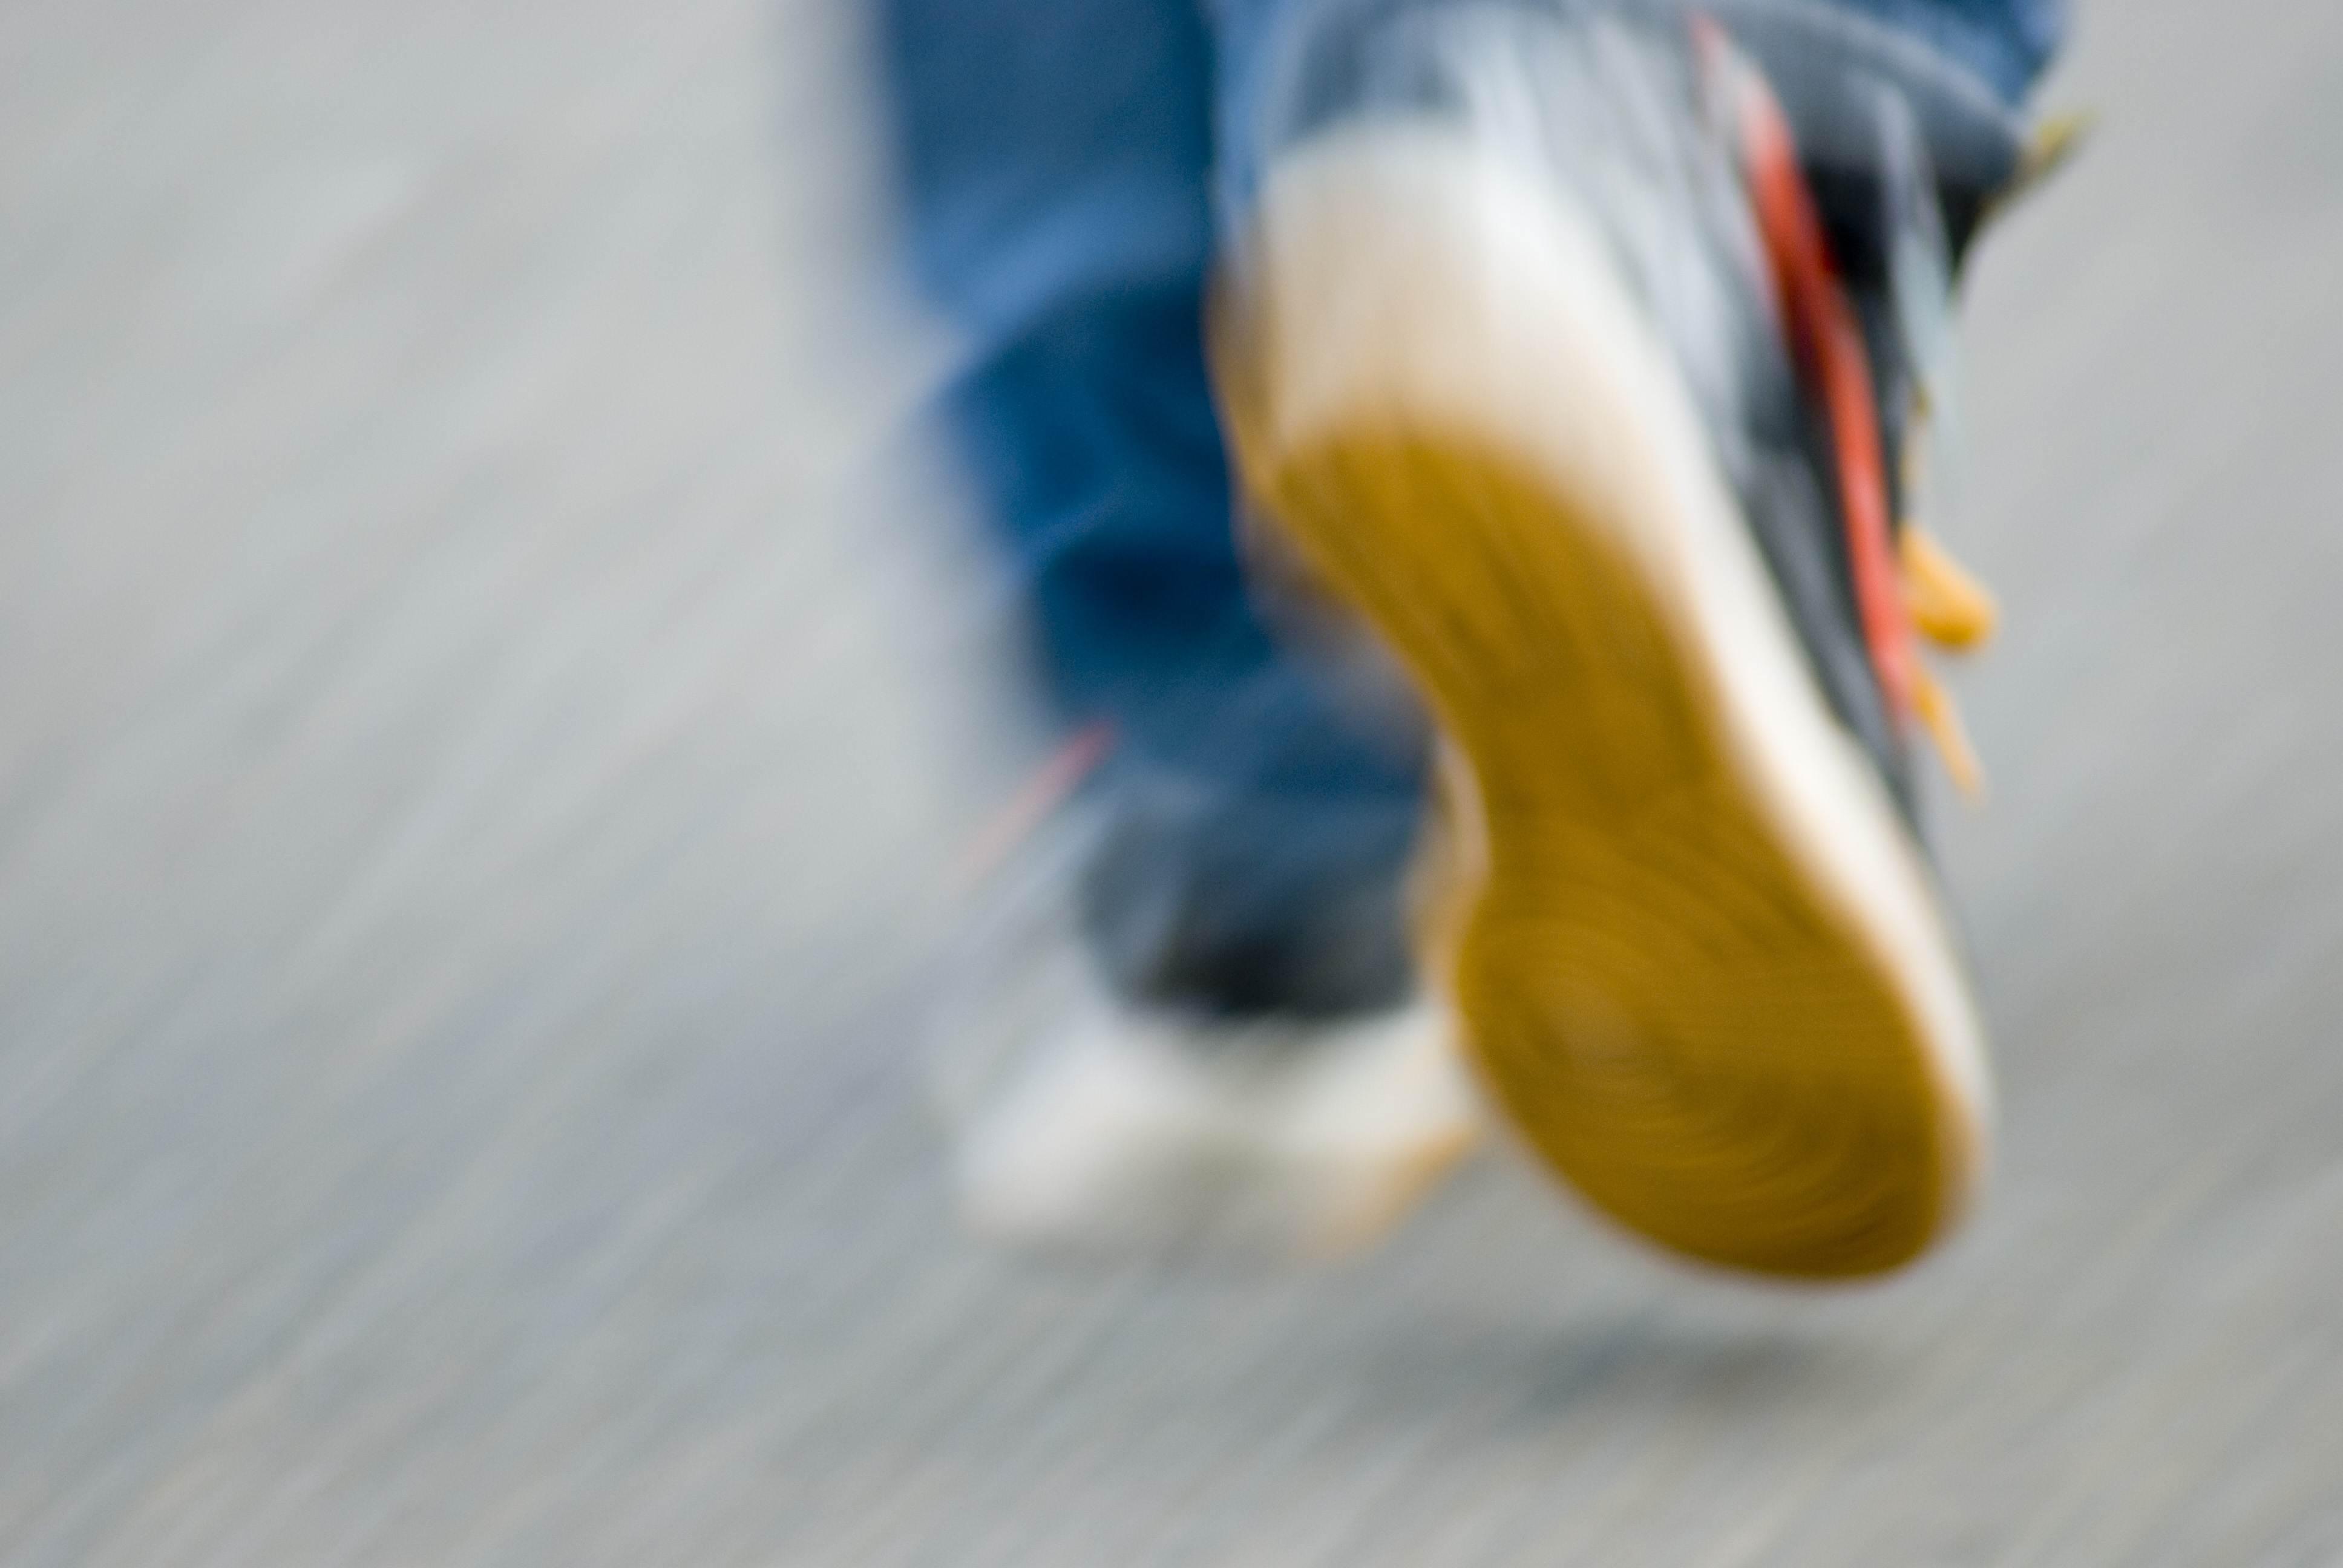 blurred motion image of walking feet